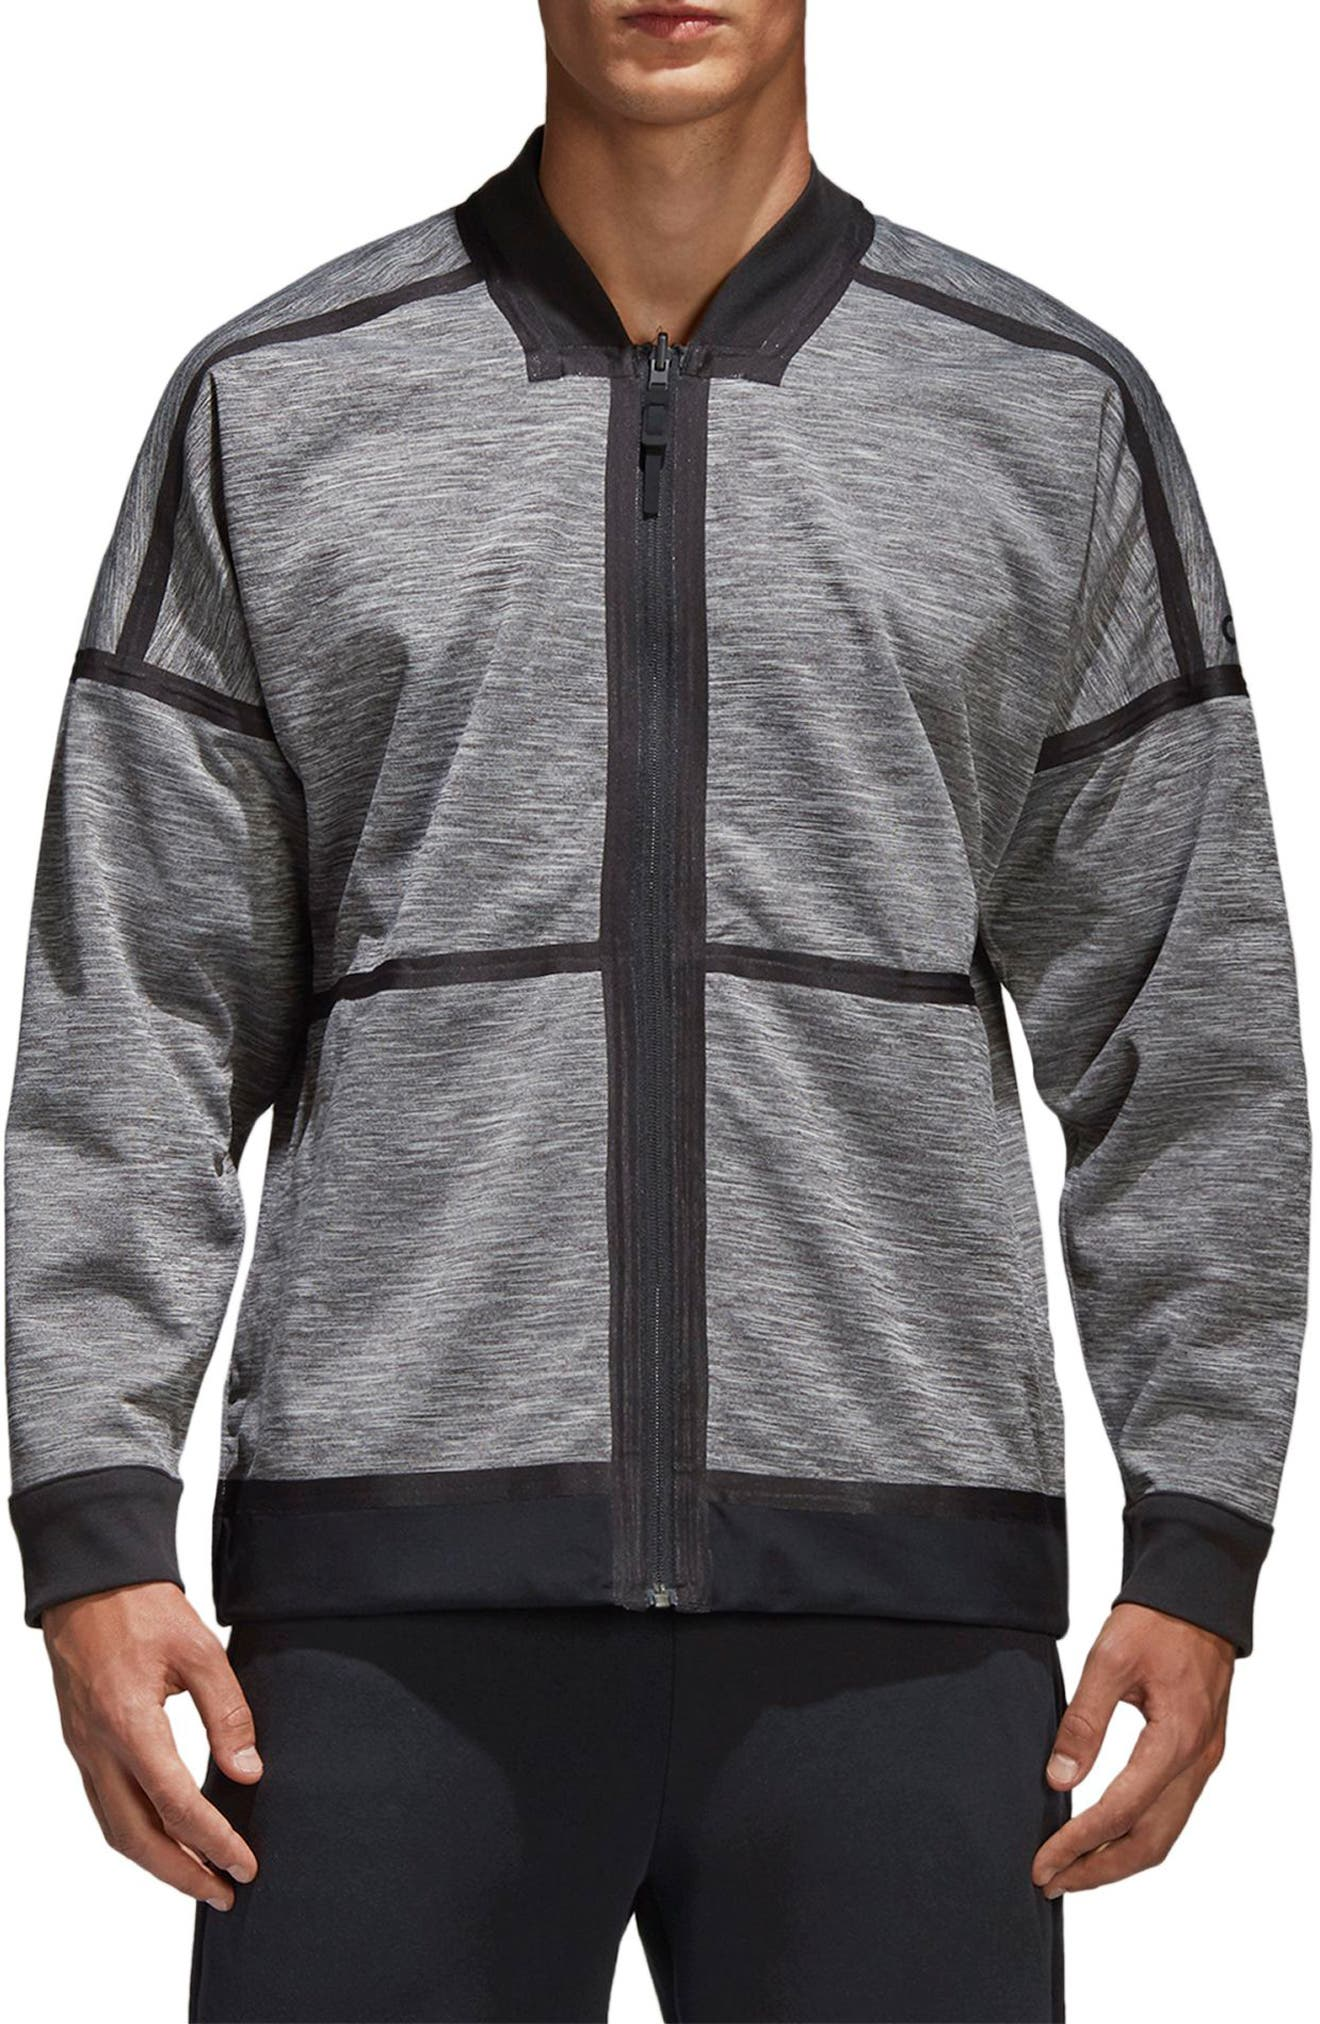 Z.N.E. Reversible Ventilated Jacket,                         Main,                         color, Black / Storm Heather/ Mgh